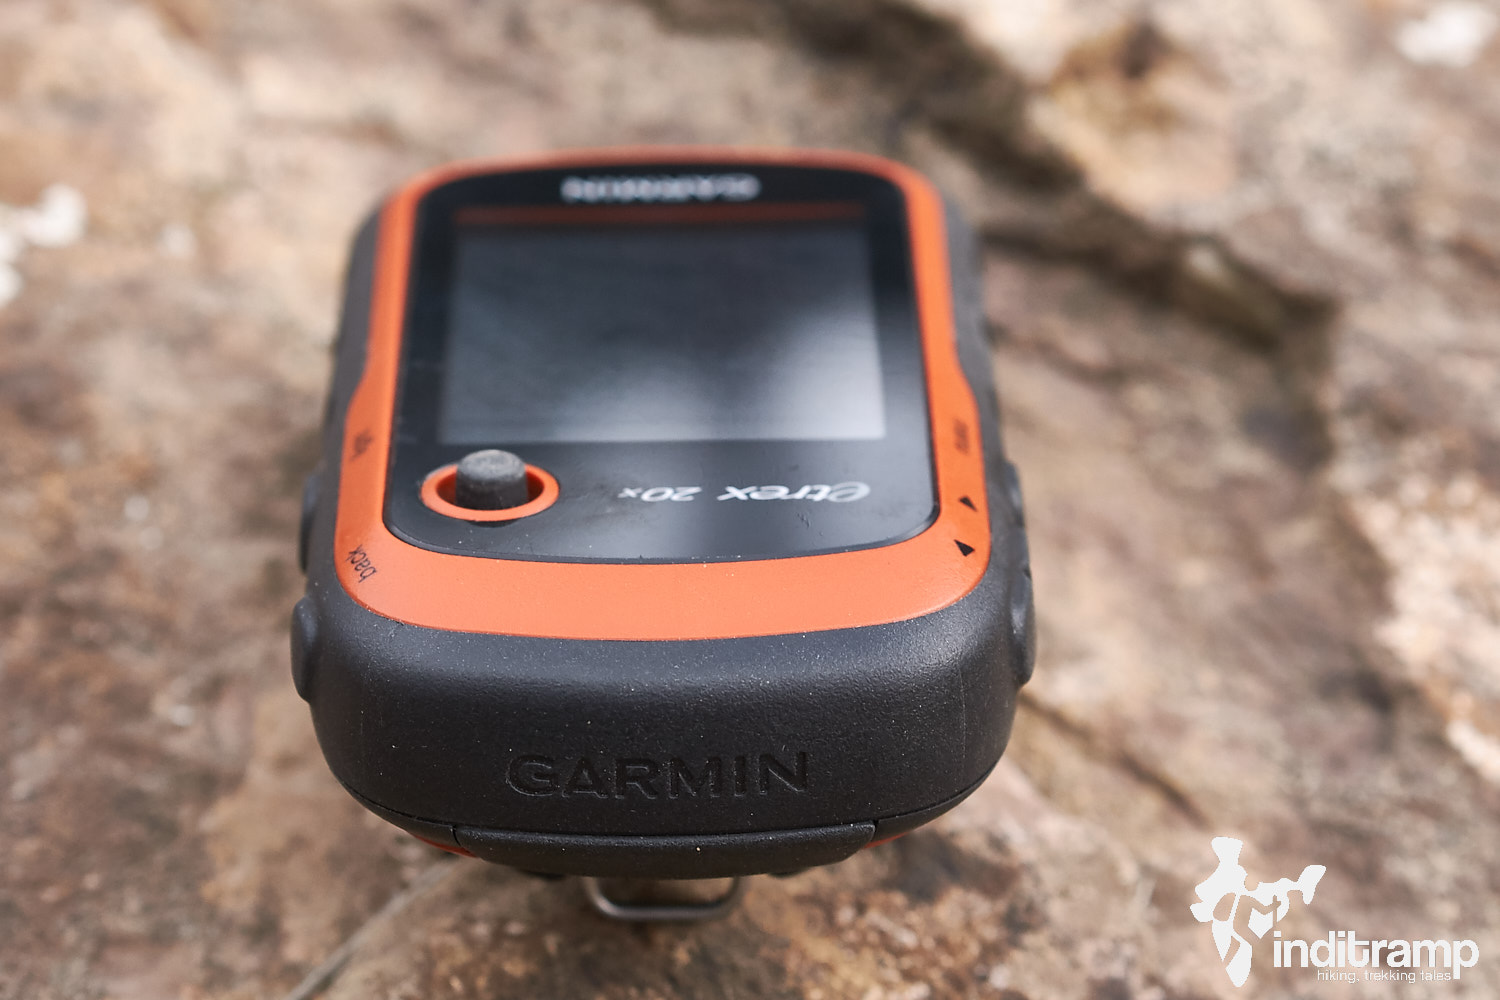 The best GPS for hiking in India – Garmin Etrex 20x review